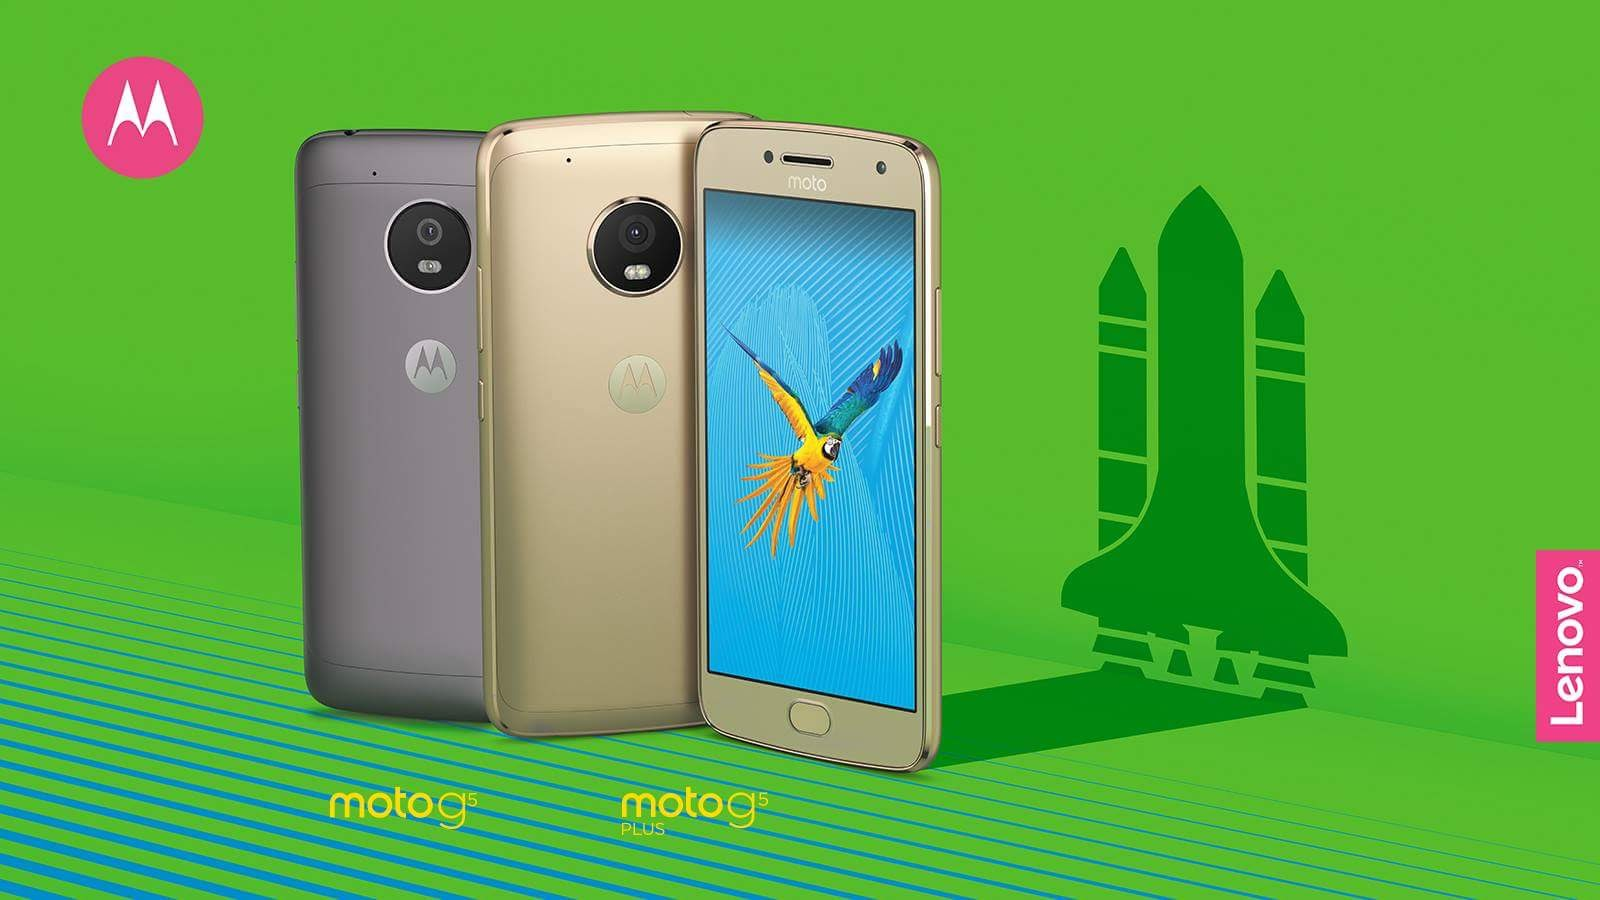 Custom ROMs for Moto G5 Plus coming soon! - Motorola Lovers